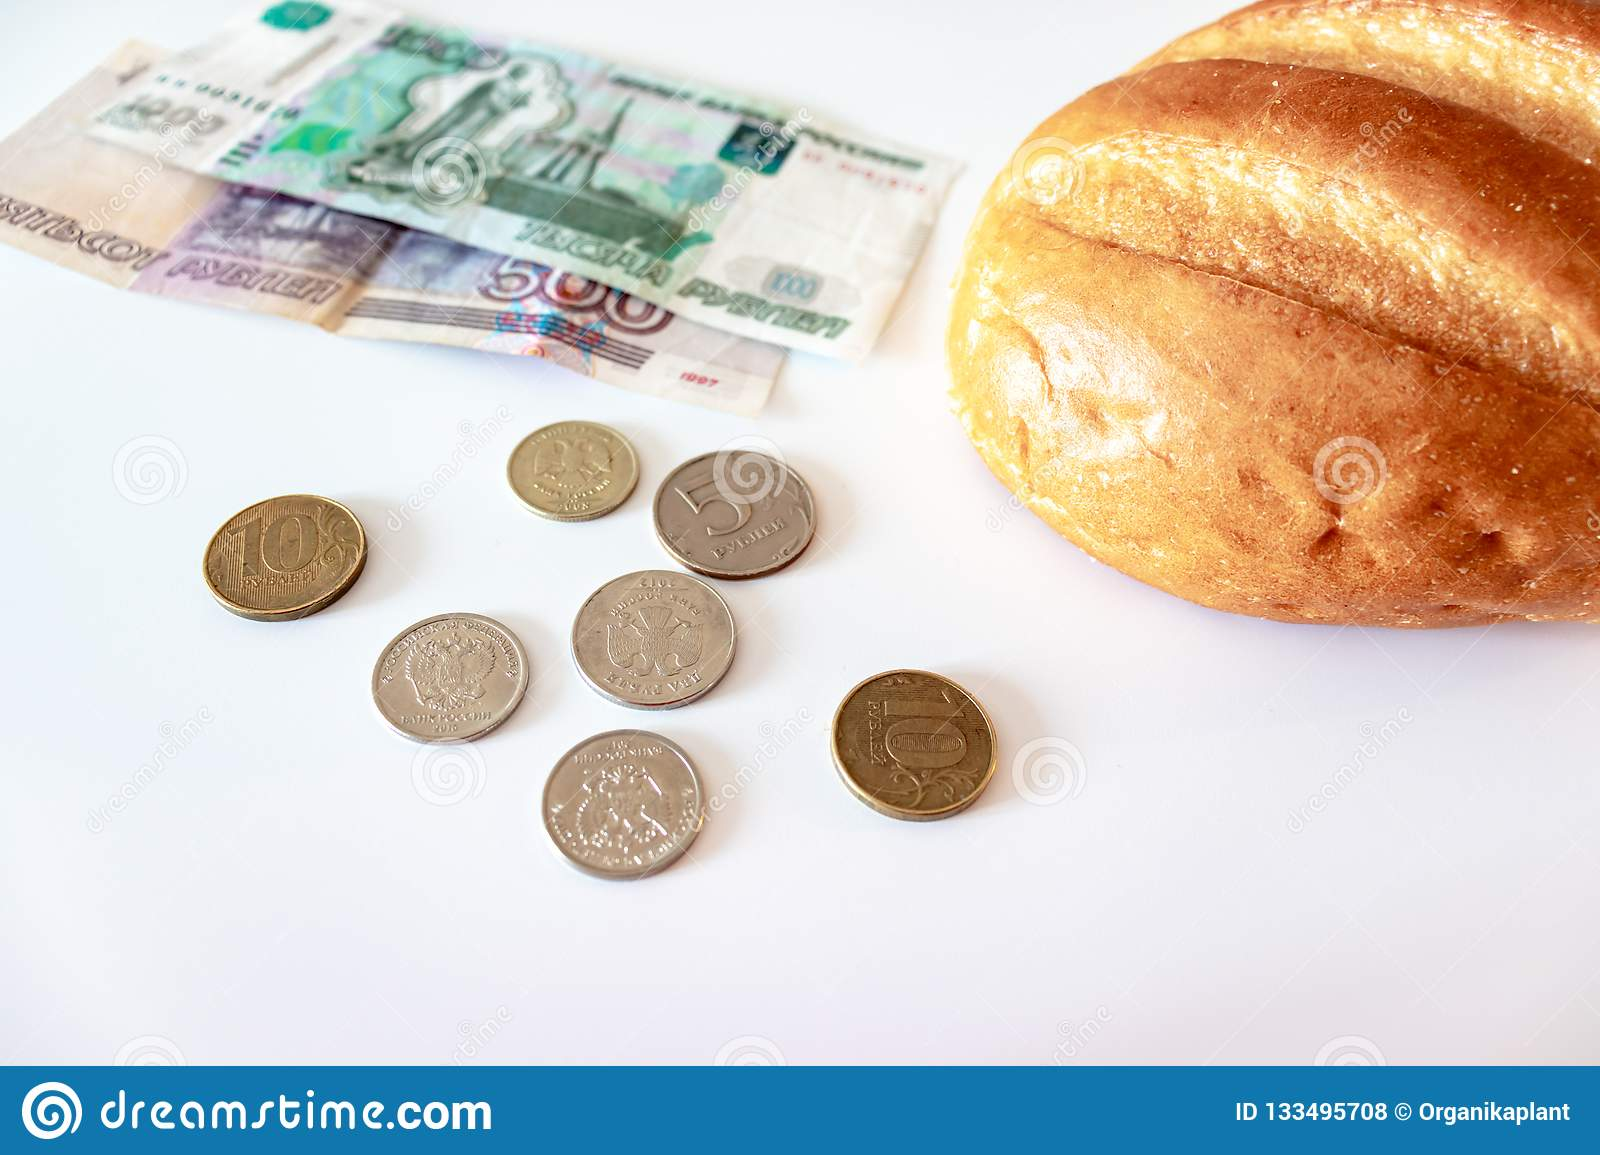 A piece of white bread, coins and paper rubles on the table. The concept of poverty, lack of money for food